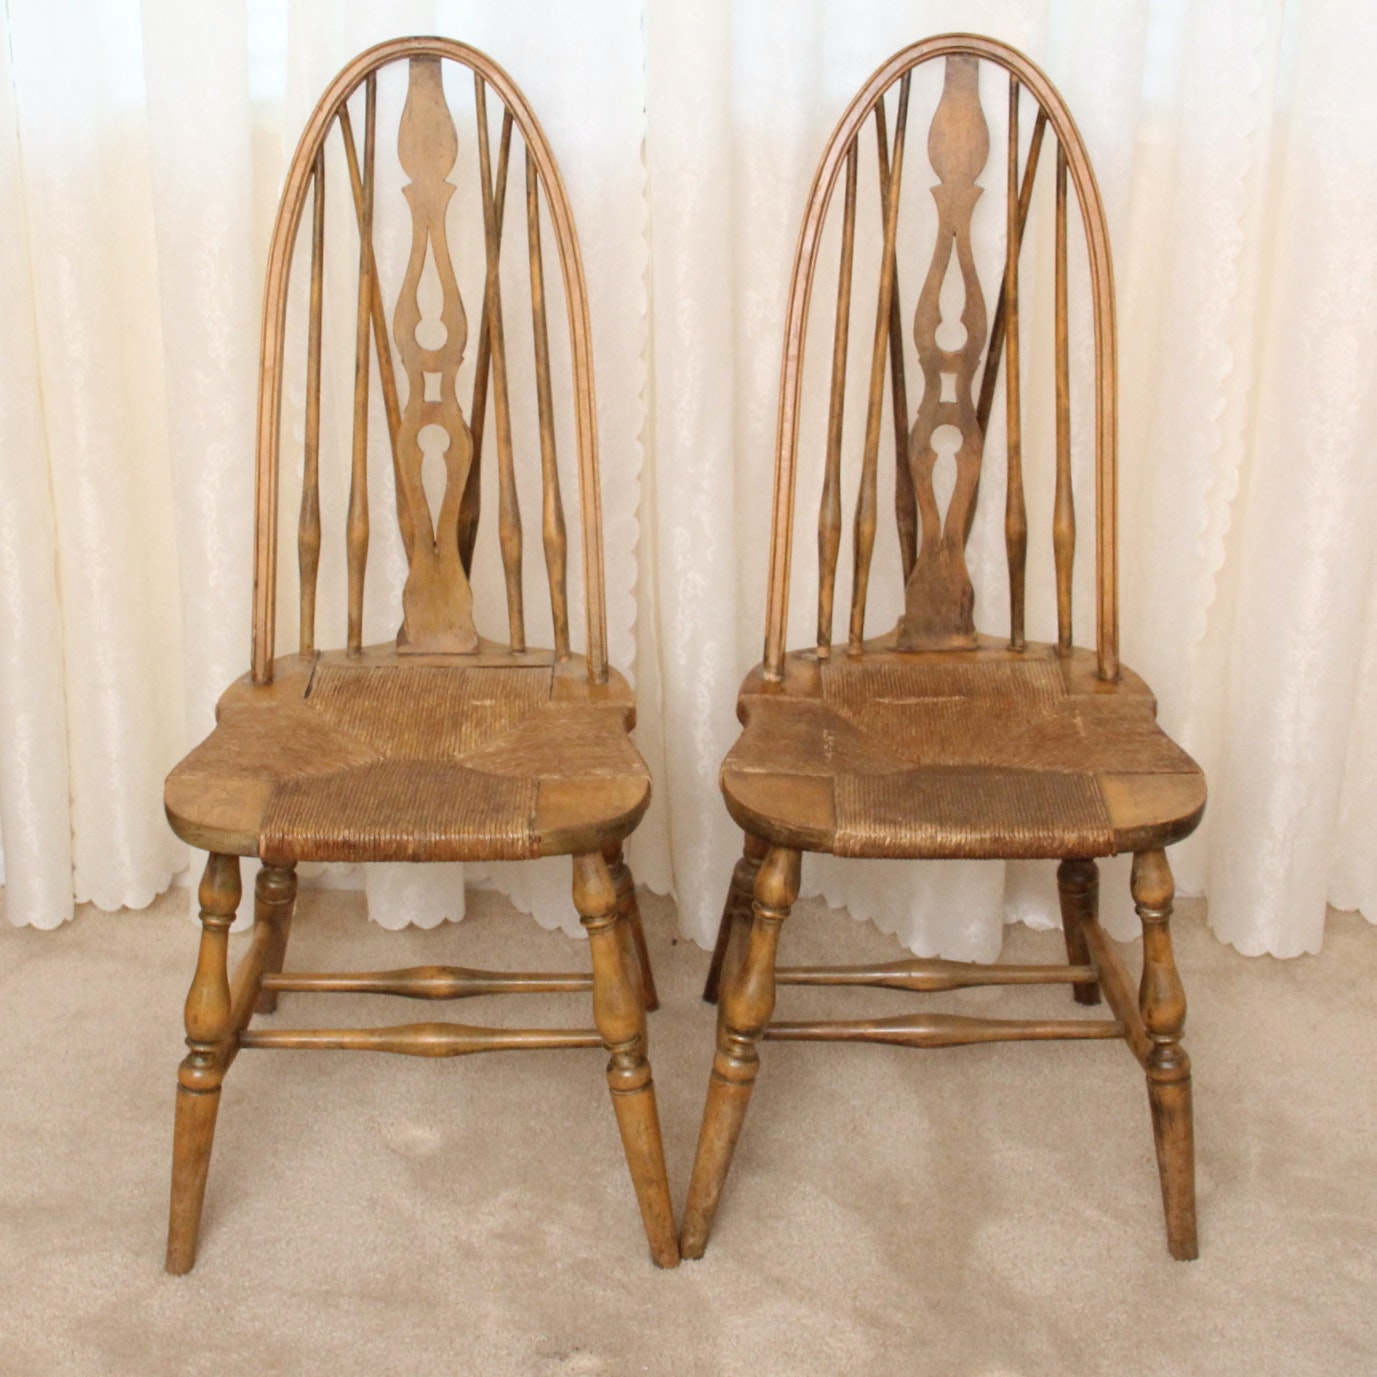 Attirant Pair Of Antique Colonial Furniture Company Windsor Chairs ...